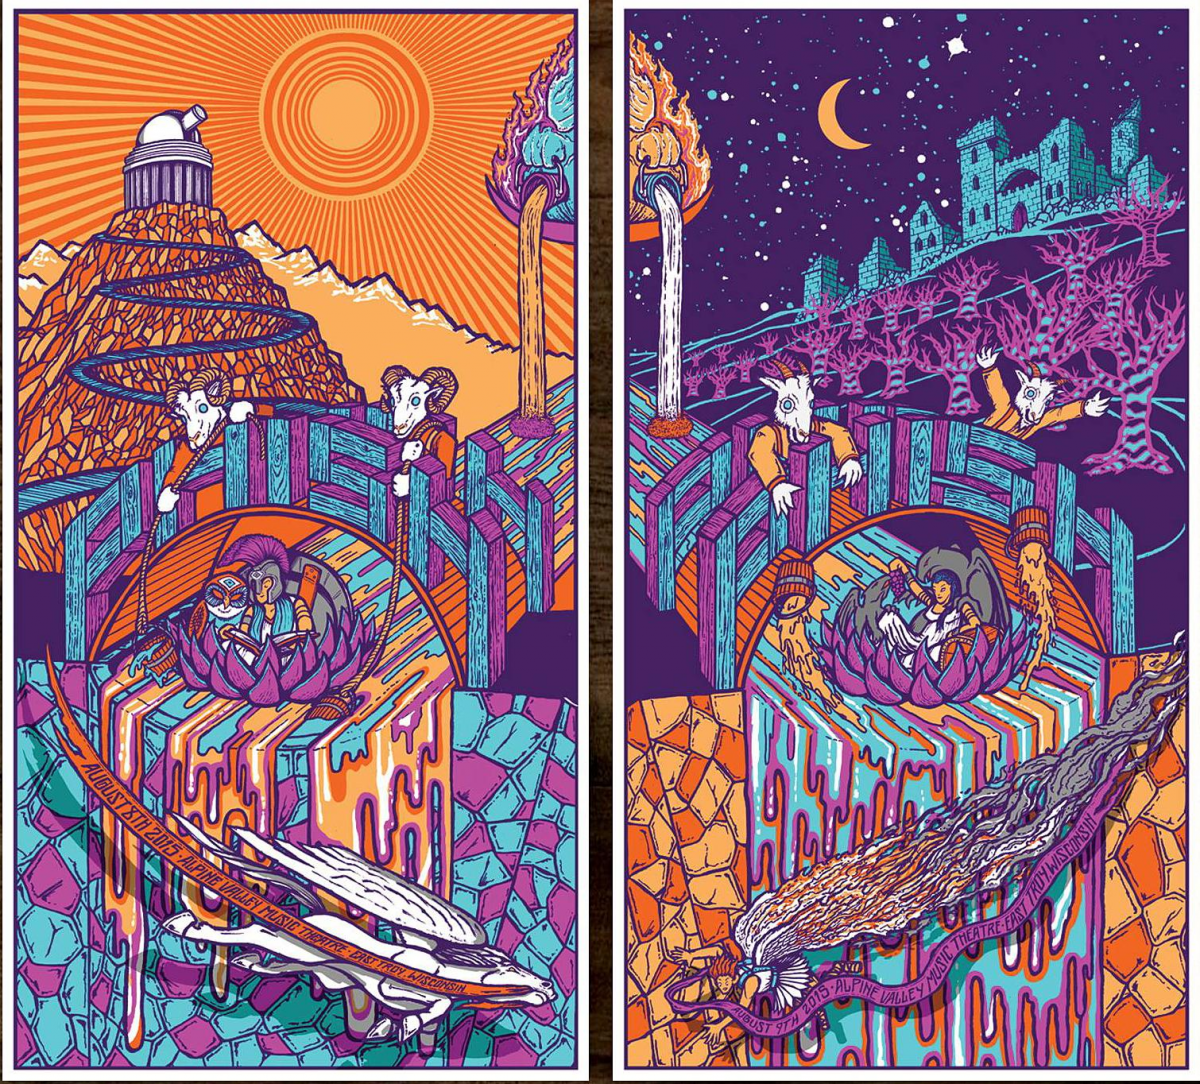 Phish Signed Posters - August 8-9, 2015 - Alpine Valley, WI (2